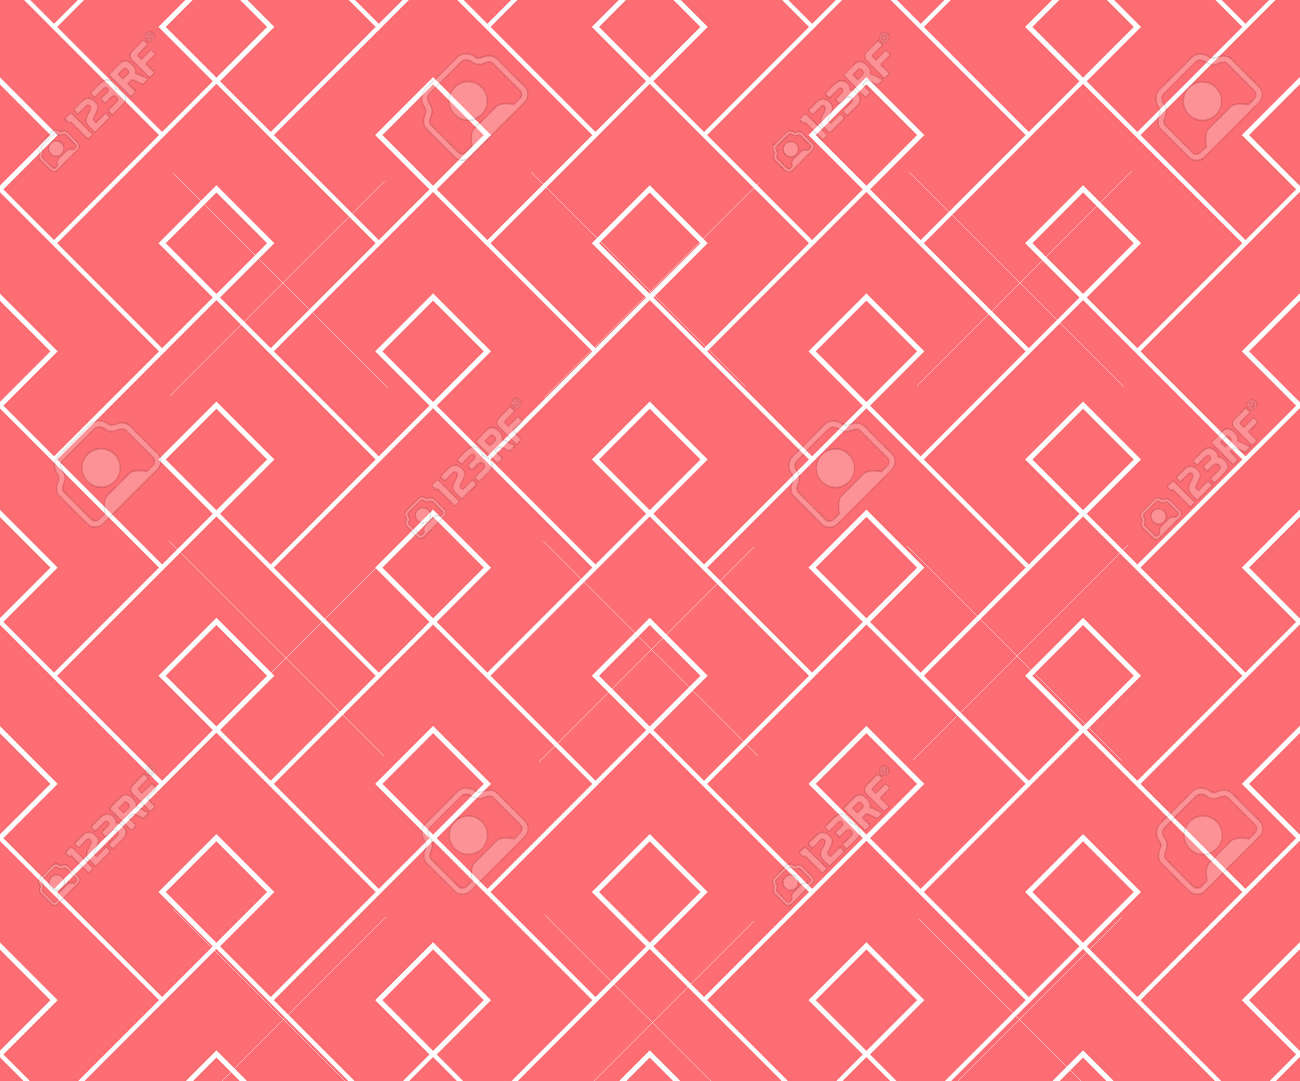 Abstract geometric pattern. A seamless vector background. White and pink ornament. Graphic modern pattern. Simple lattice graphic design - 169842938